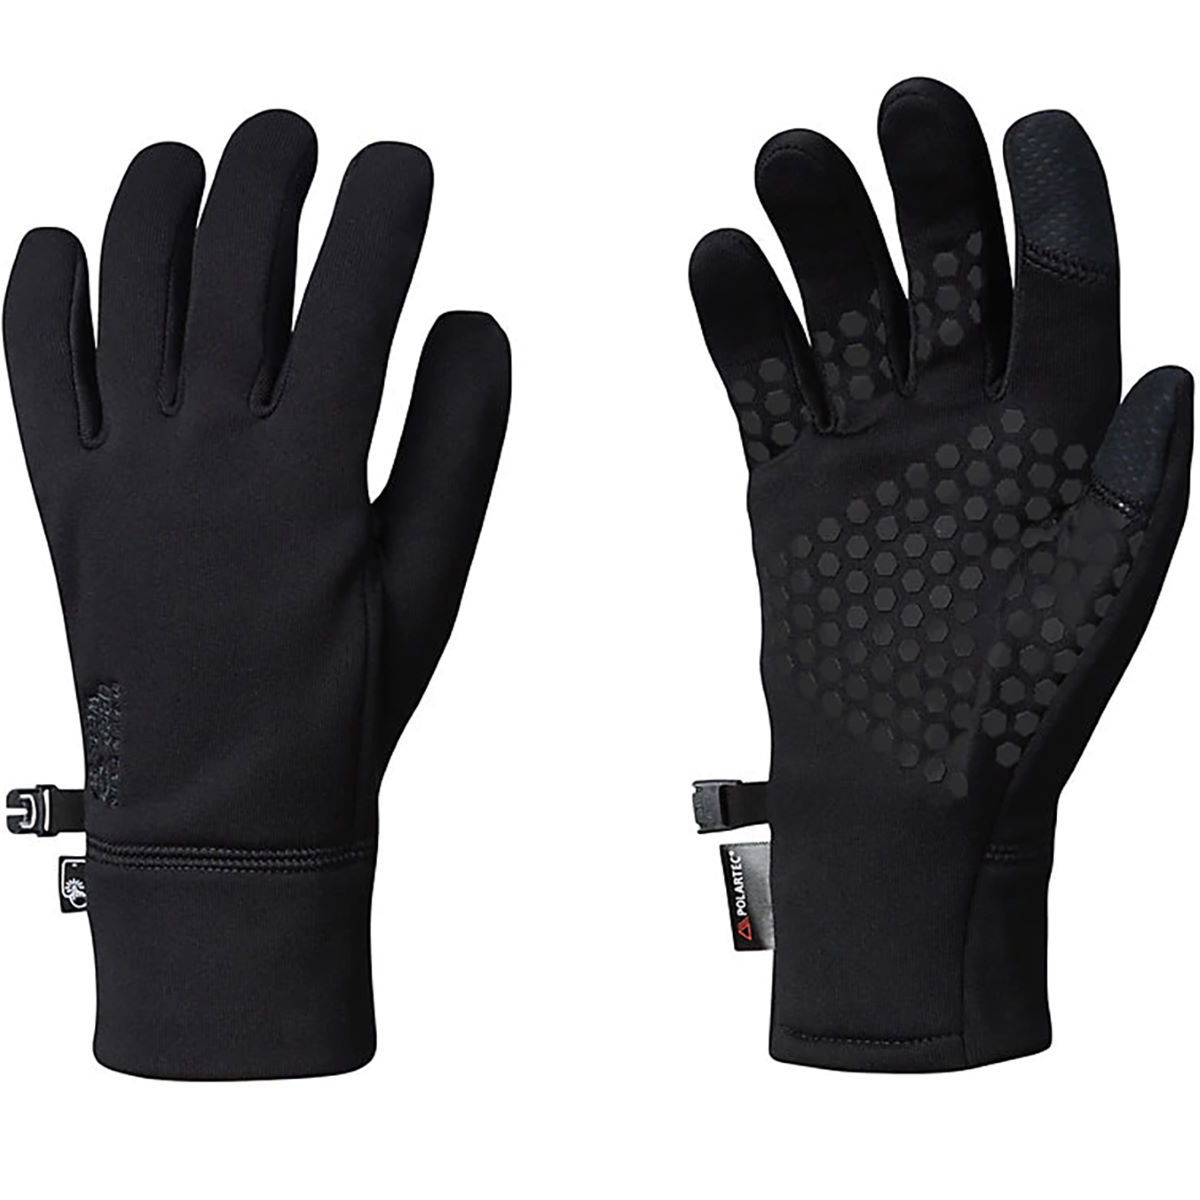 Mountain Hardwear Mountain Hardwear Power Stretch Stimulus™ Glove   Gloves